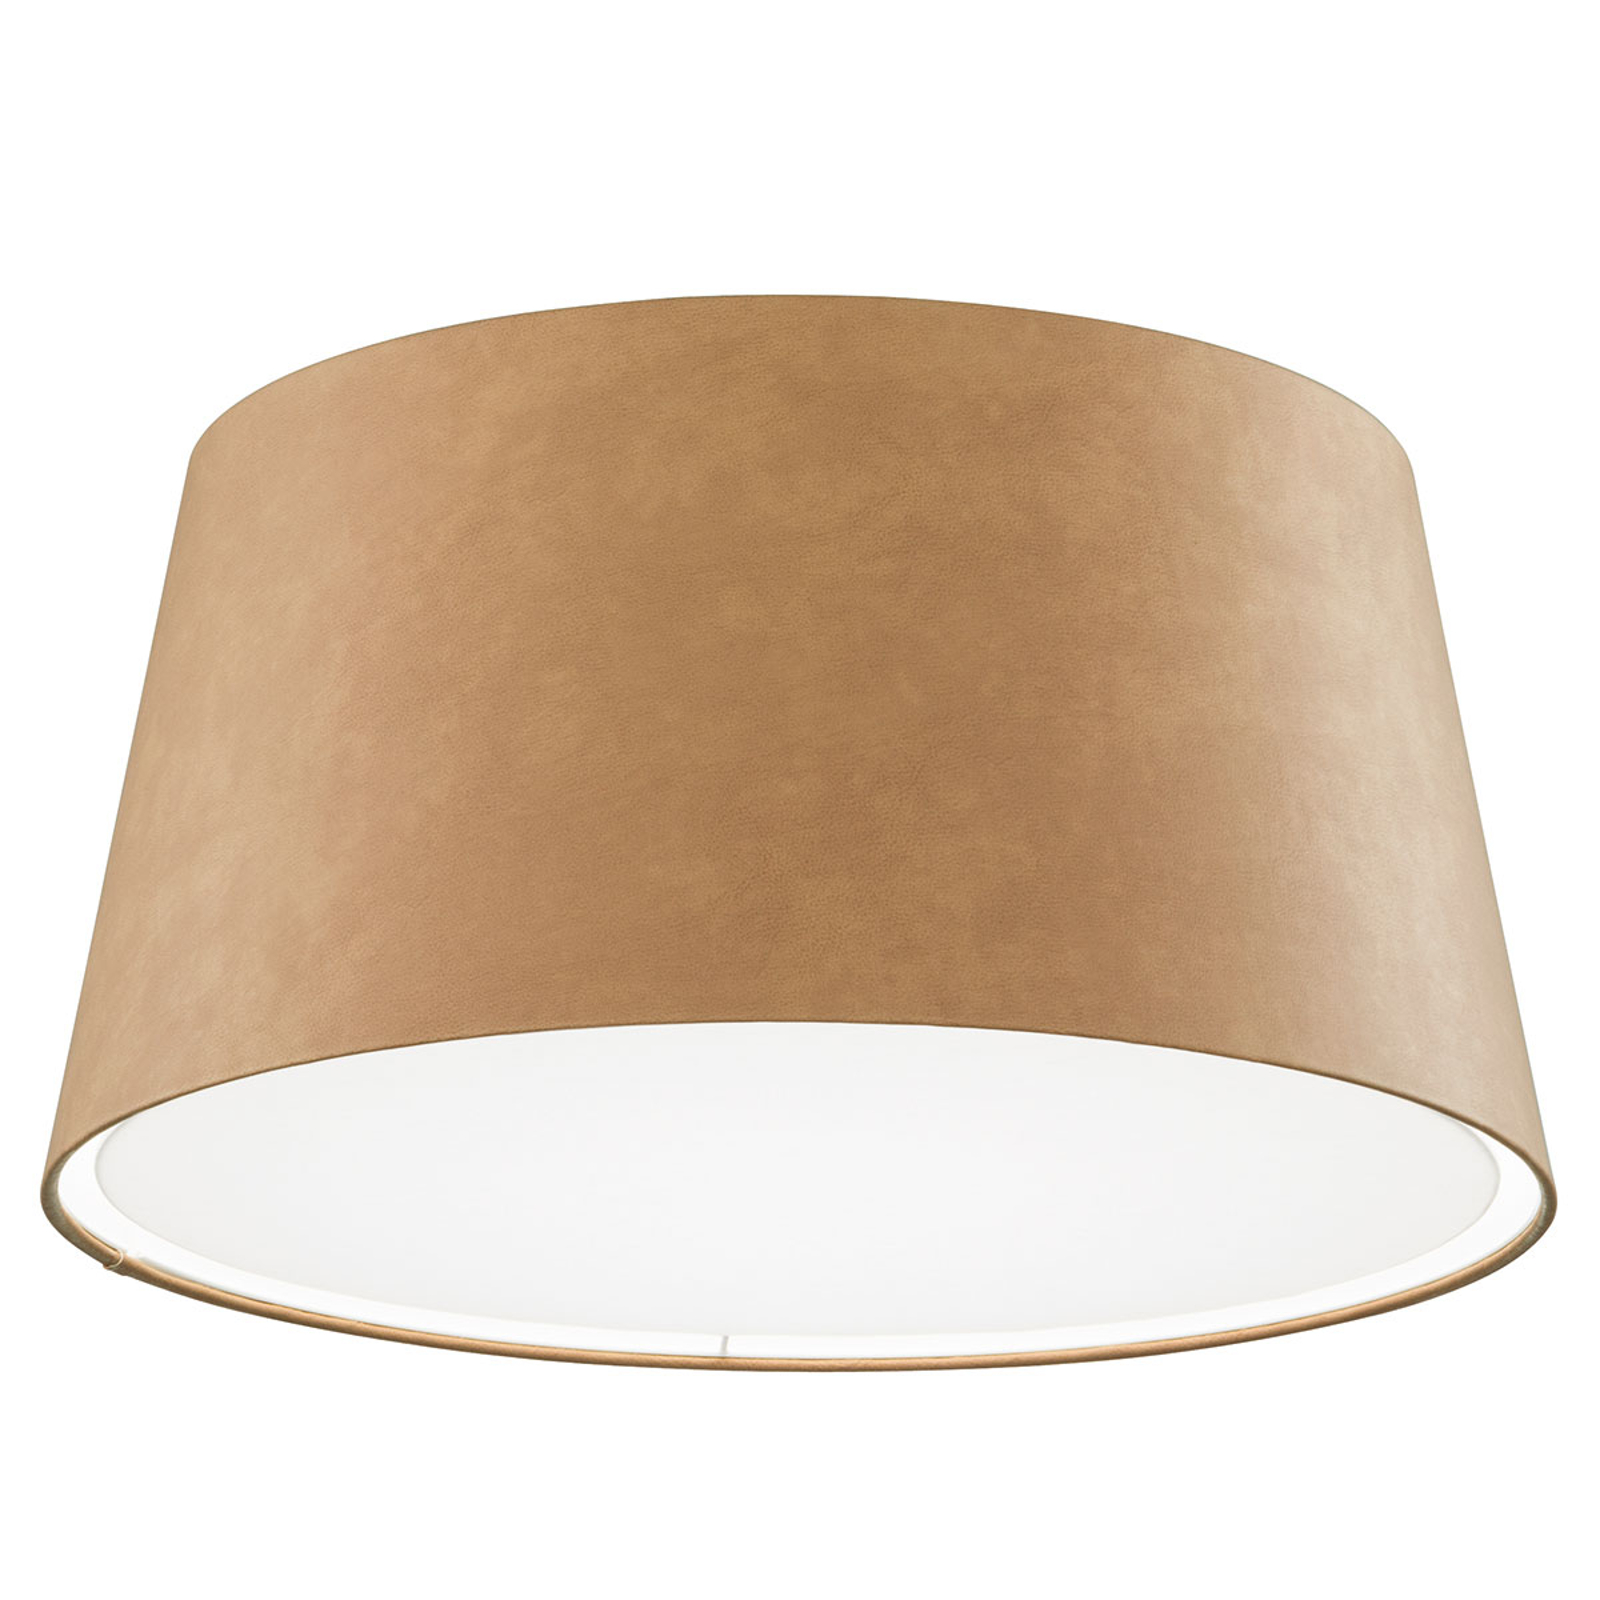 Plafonnier LED Louise dimmable 3 000 K caramel